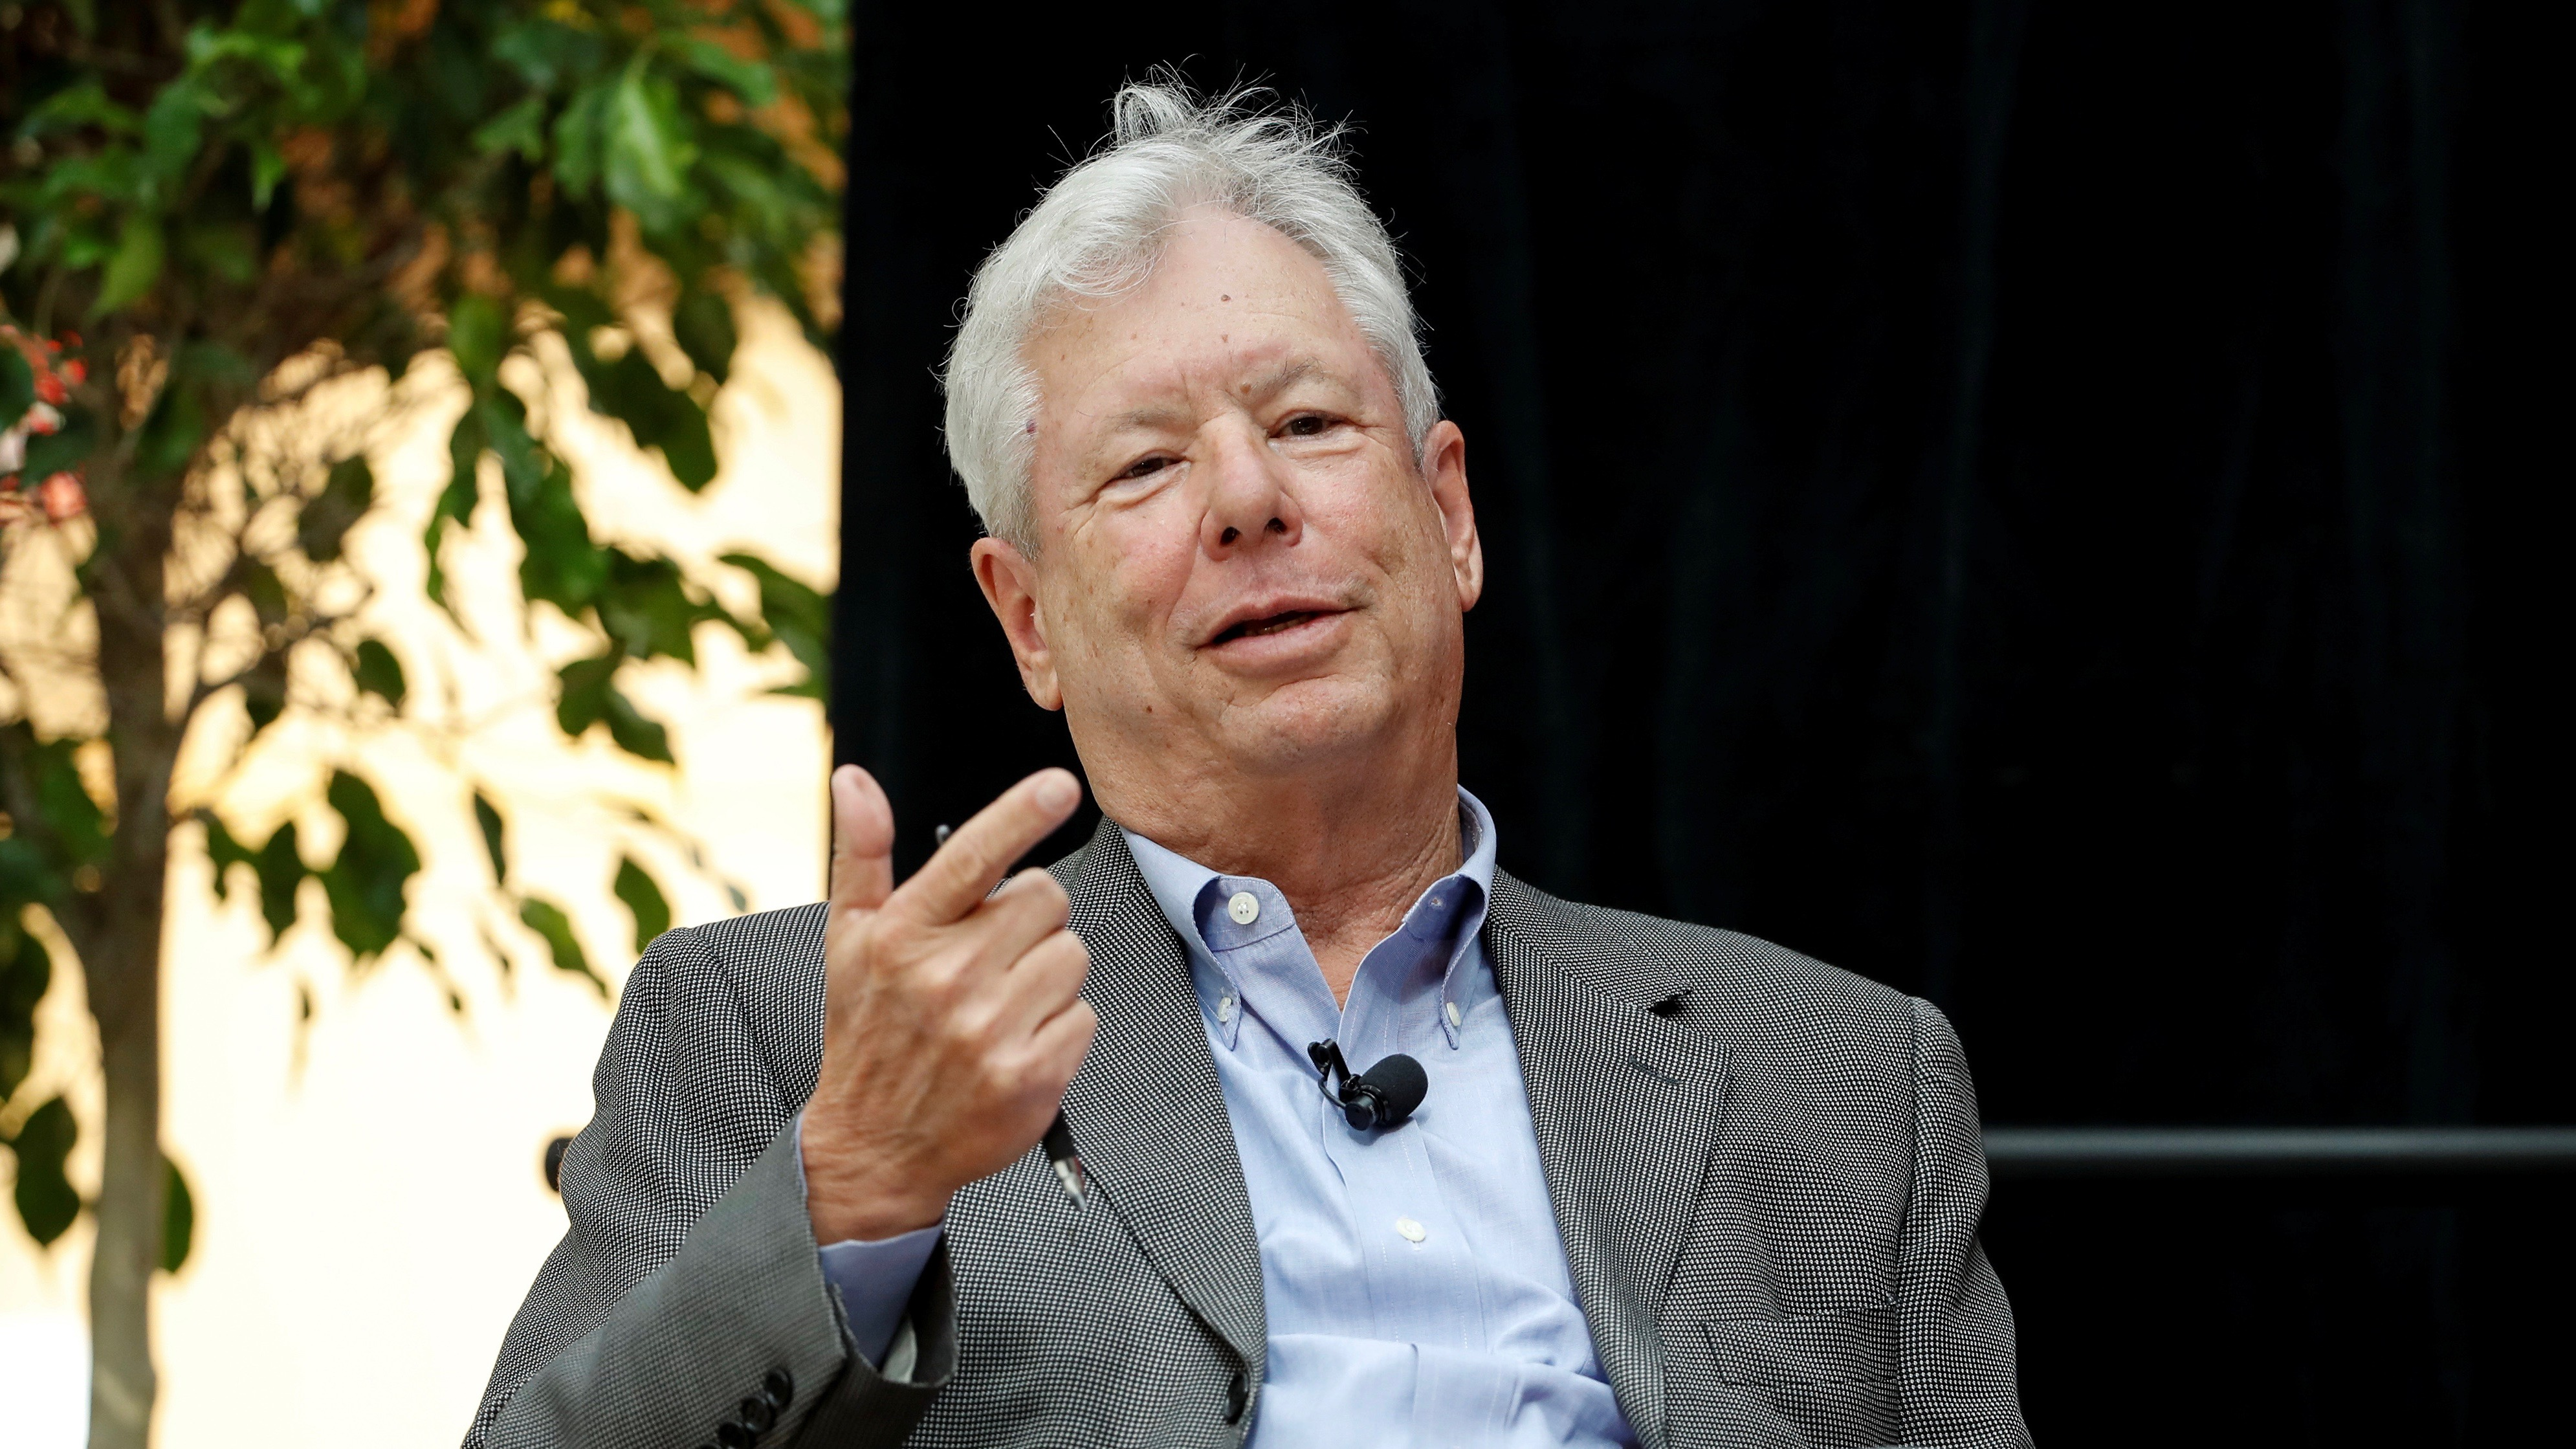 U.S. economist Richard Thaler, of the University of Chicago Booth School of Business, speaks during a news conference after winning the 2017 Nobel Economics Prize in Chicago, Illinois, U.S. October 9, 2017.